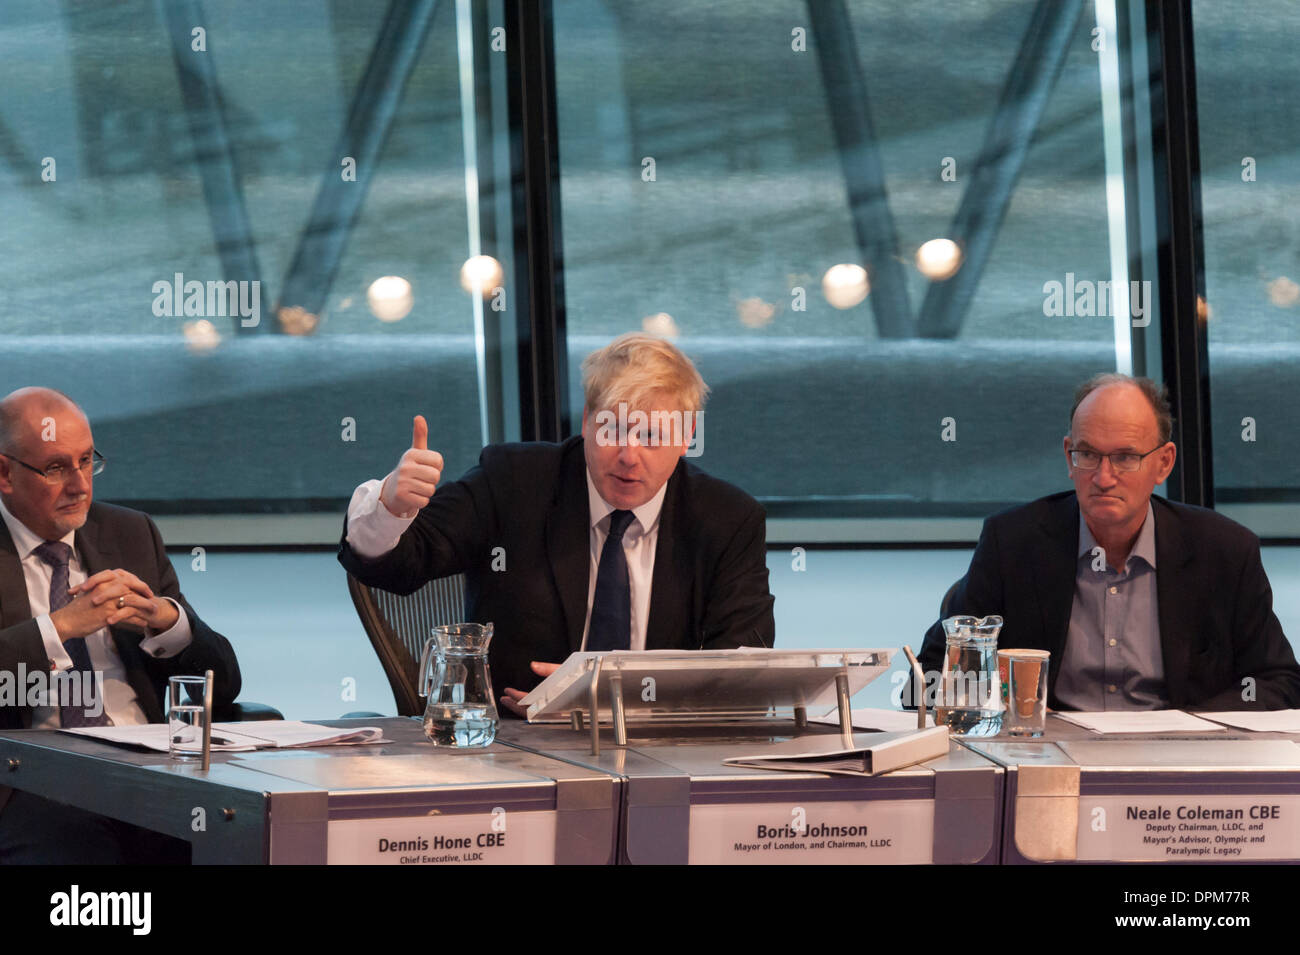 City Hall, London, UK. 15th January, 2014. Boris Johnson, answering questions from the London Assembly on the Olympic South Park legacy quipped 'I'm going down South Park, I'm gonna have myself a time. We took the precaution of killing Kenny'. The Aquatics centre will open on the 1st March. Credit:  Lee Thomas/Alamy Live News - Stock Image